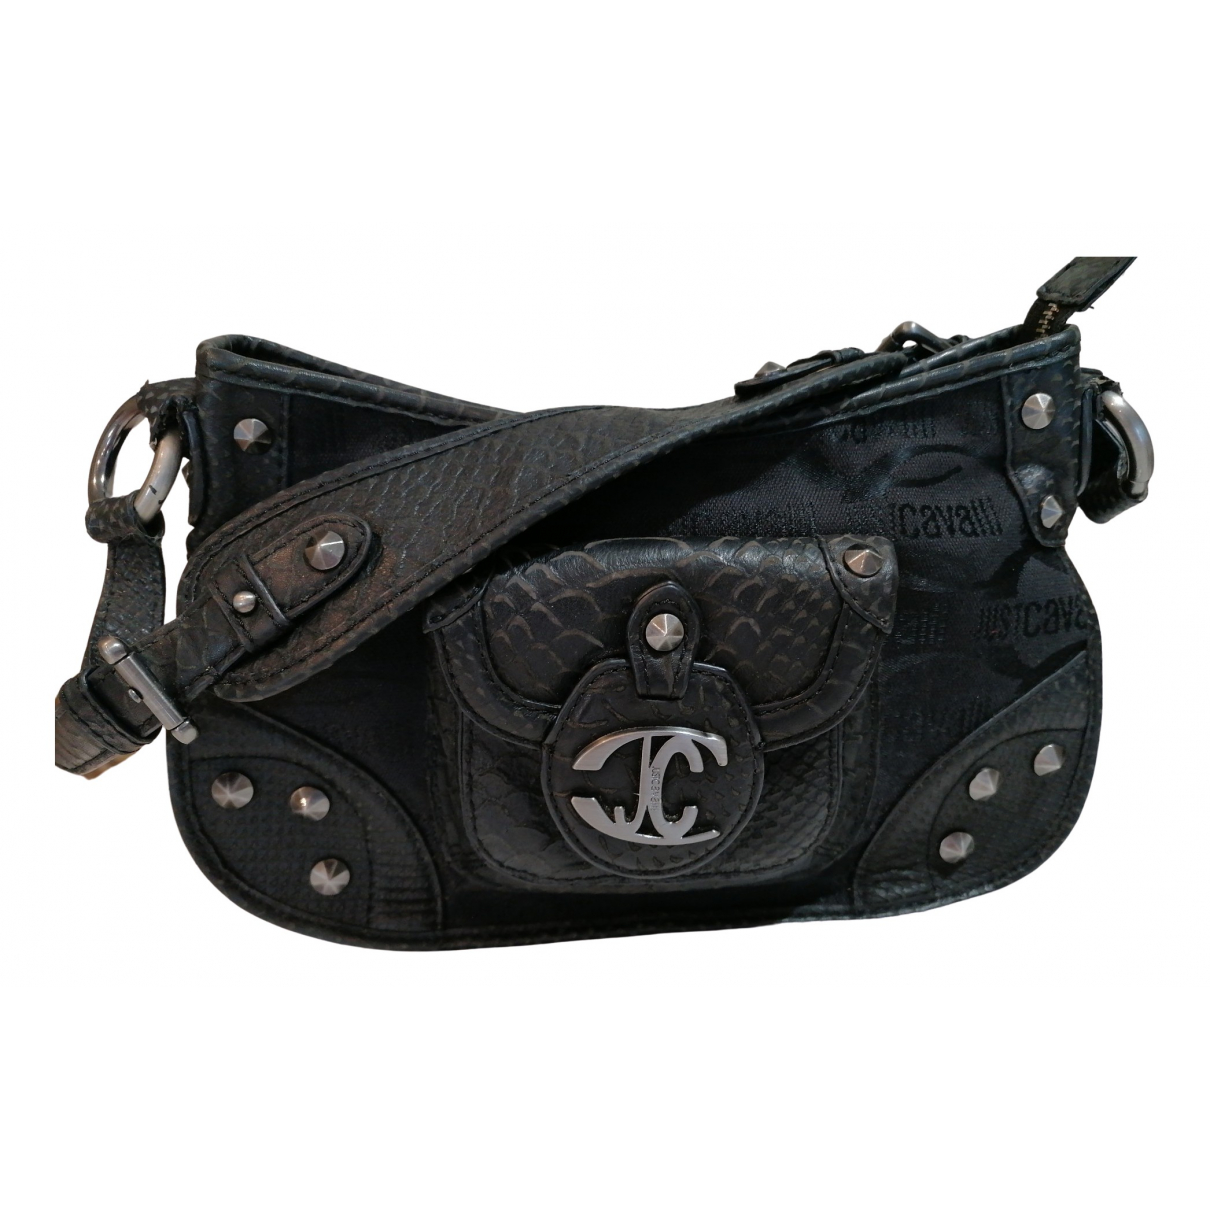 Just Cavalli \N Black Leather Clutch bag for Women \N